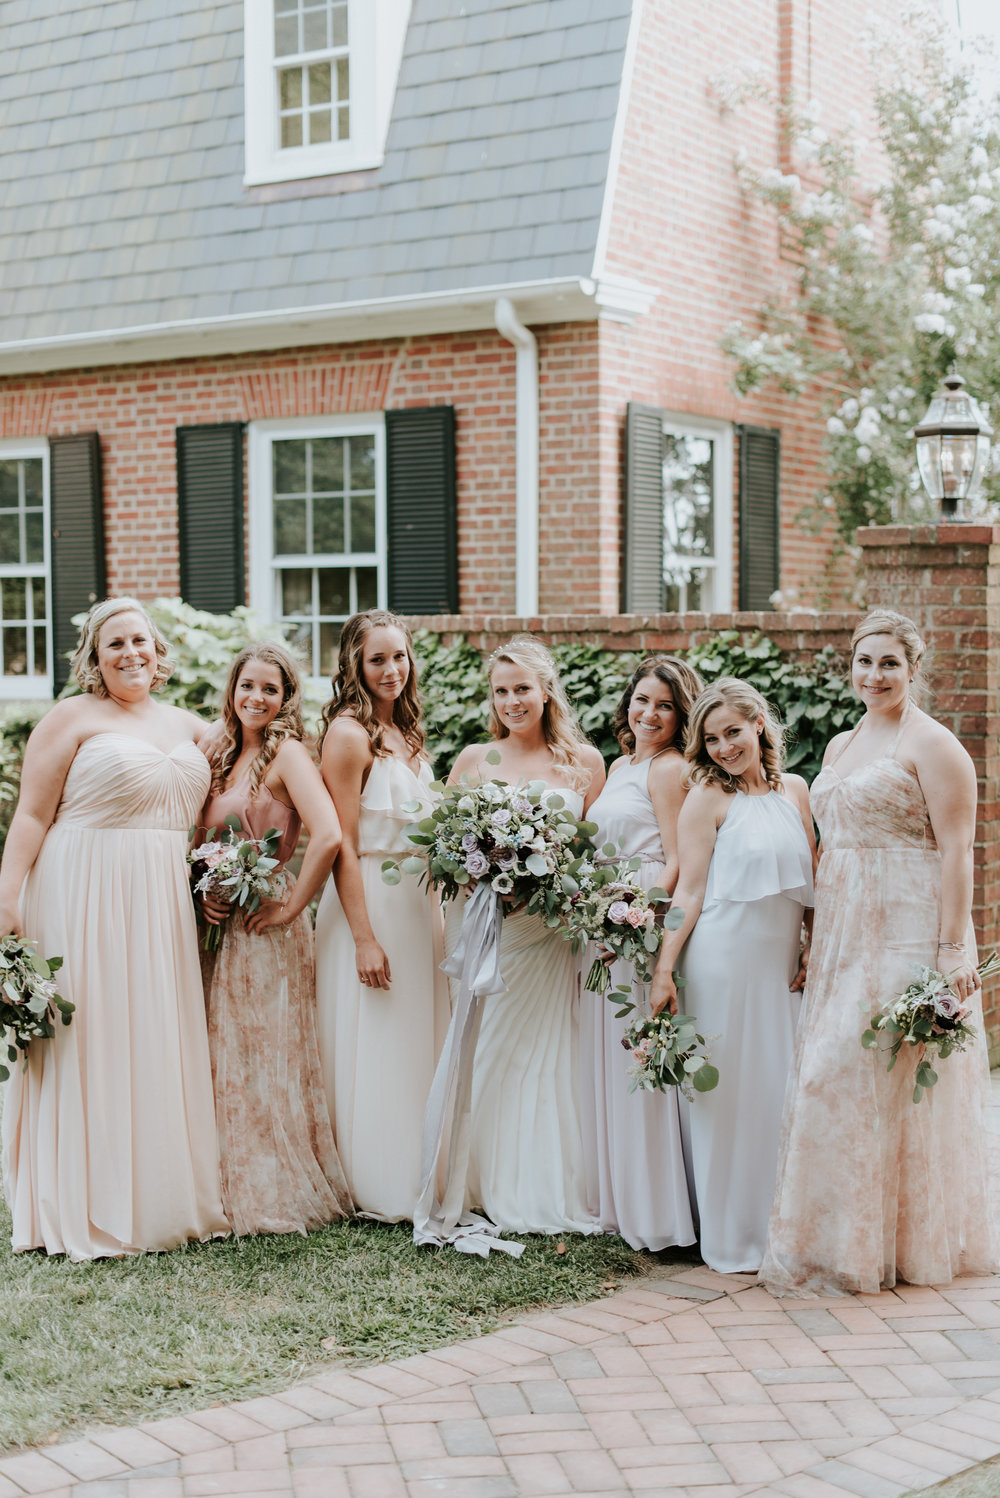 Rustic Oyster Themed Eastern Shore Maryland Outdoor Wedding by East Made Event Company Wedding Planner and Bekah Kay Creative400.jpg